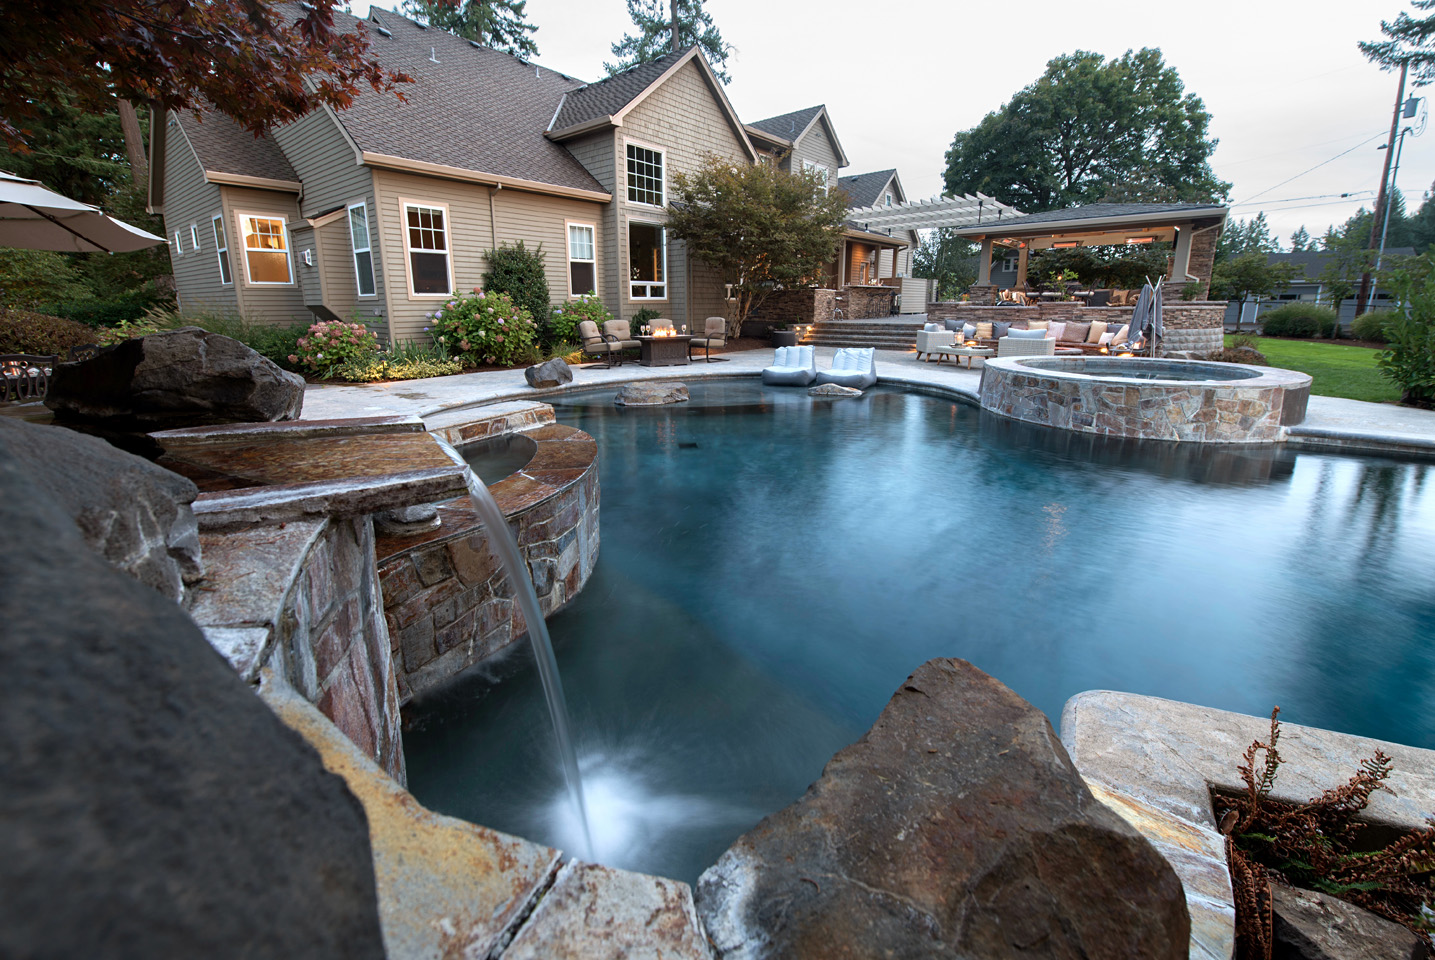 Waterfalls into pool with boulder elements add extra visual  - the pool & hot spa doubly inviting